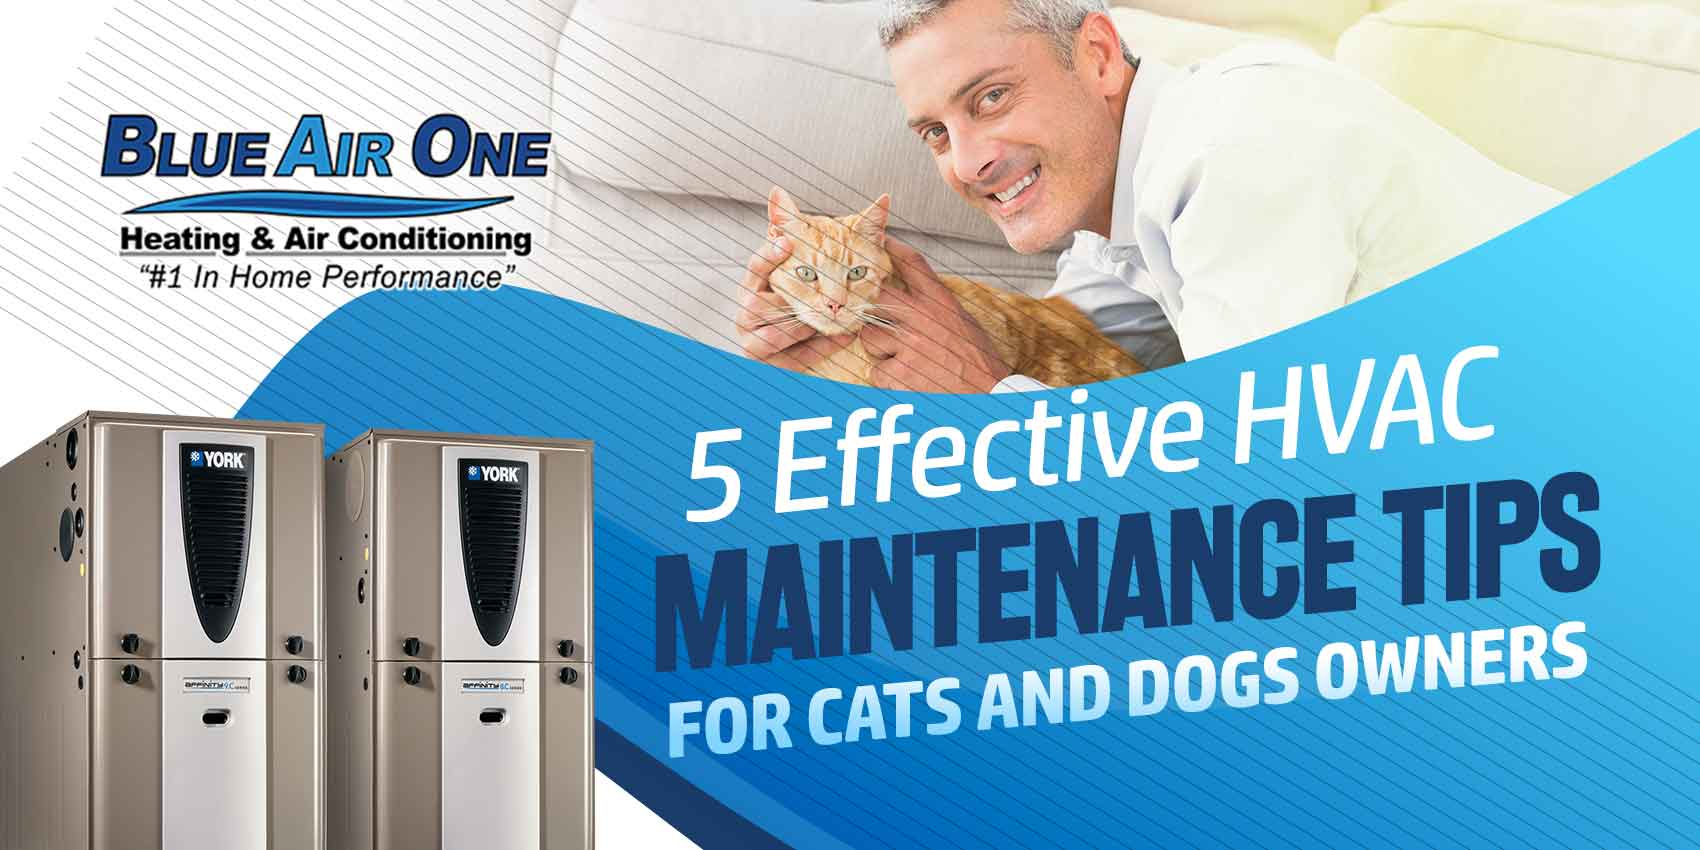 5 Effective HVAC Maintenance Tips for Cats and Dogs Owners